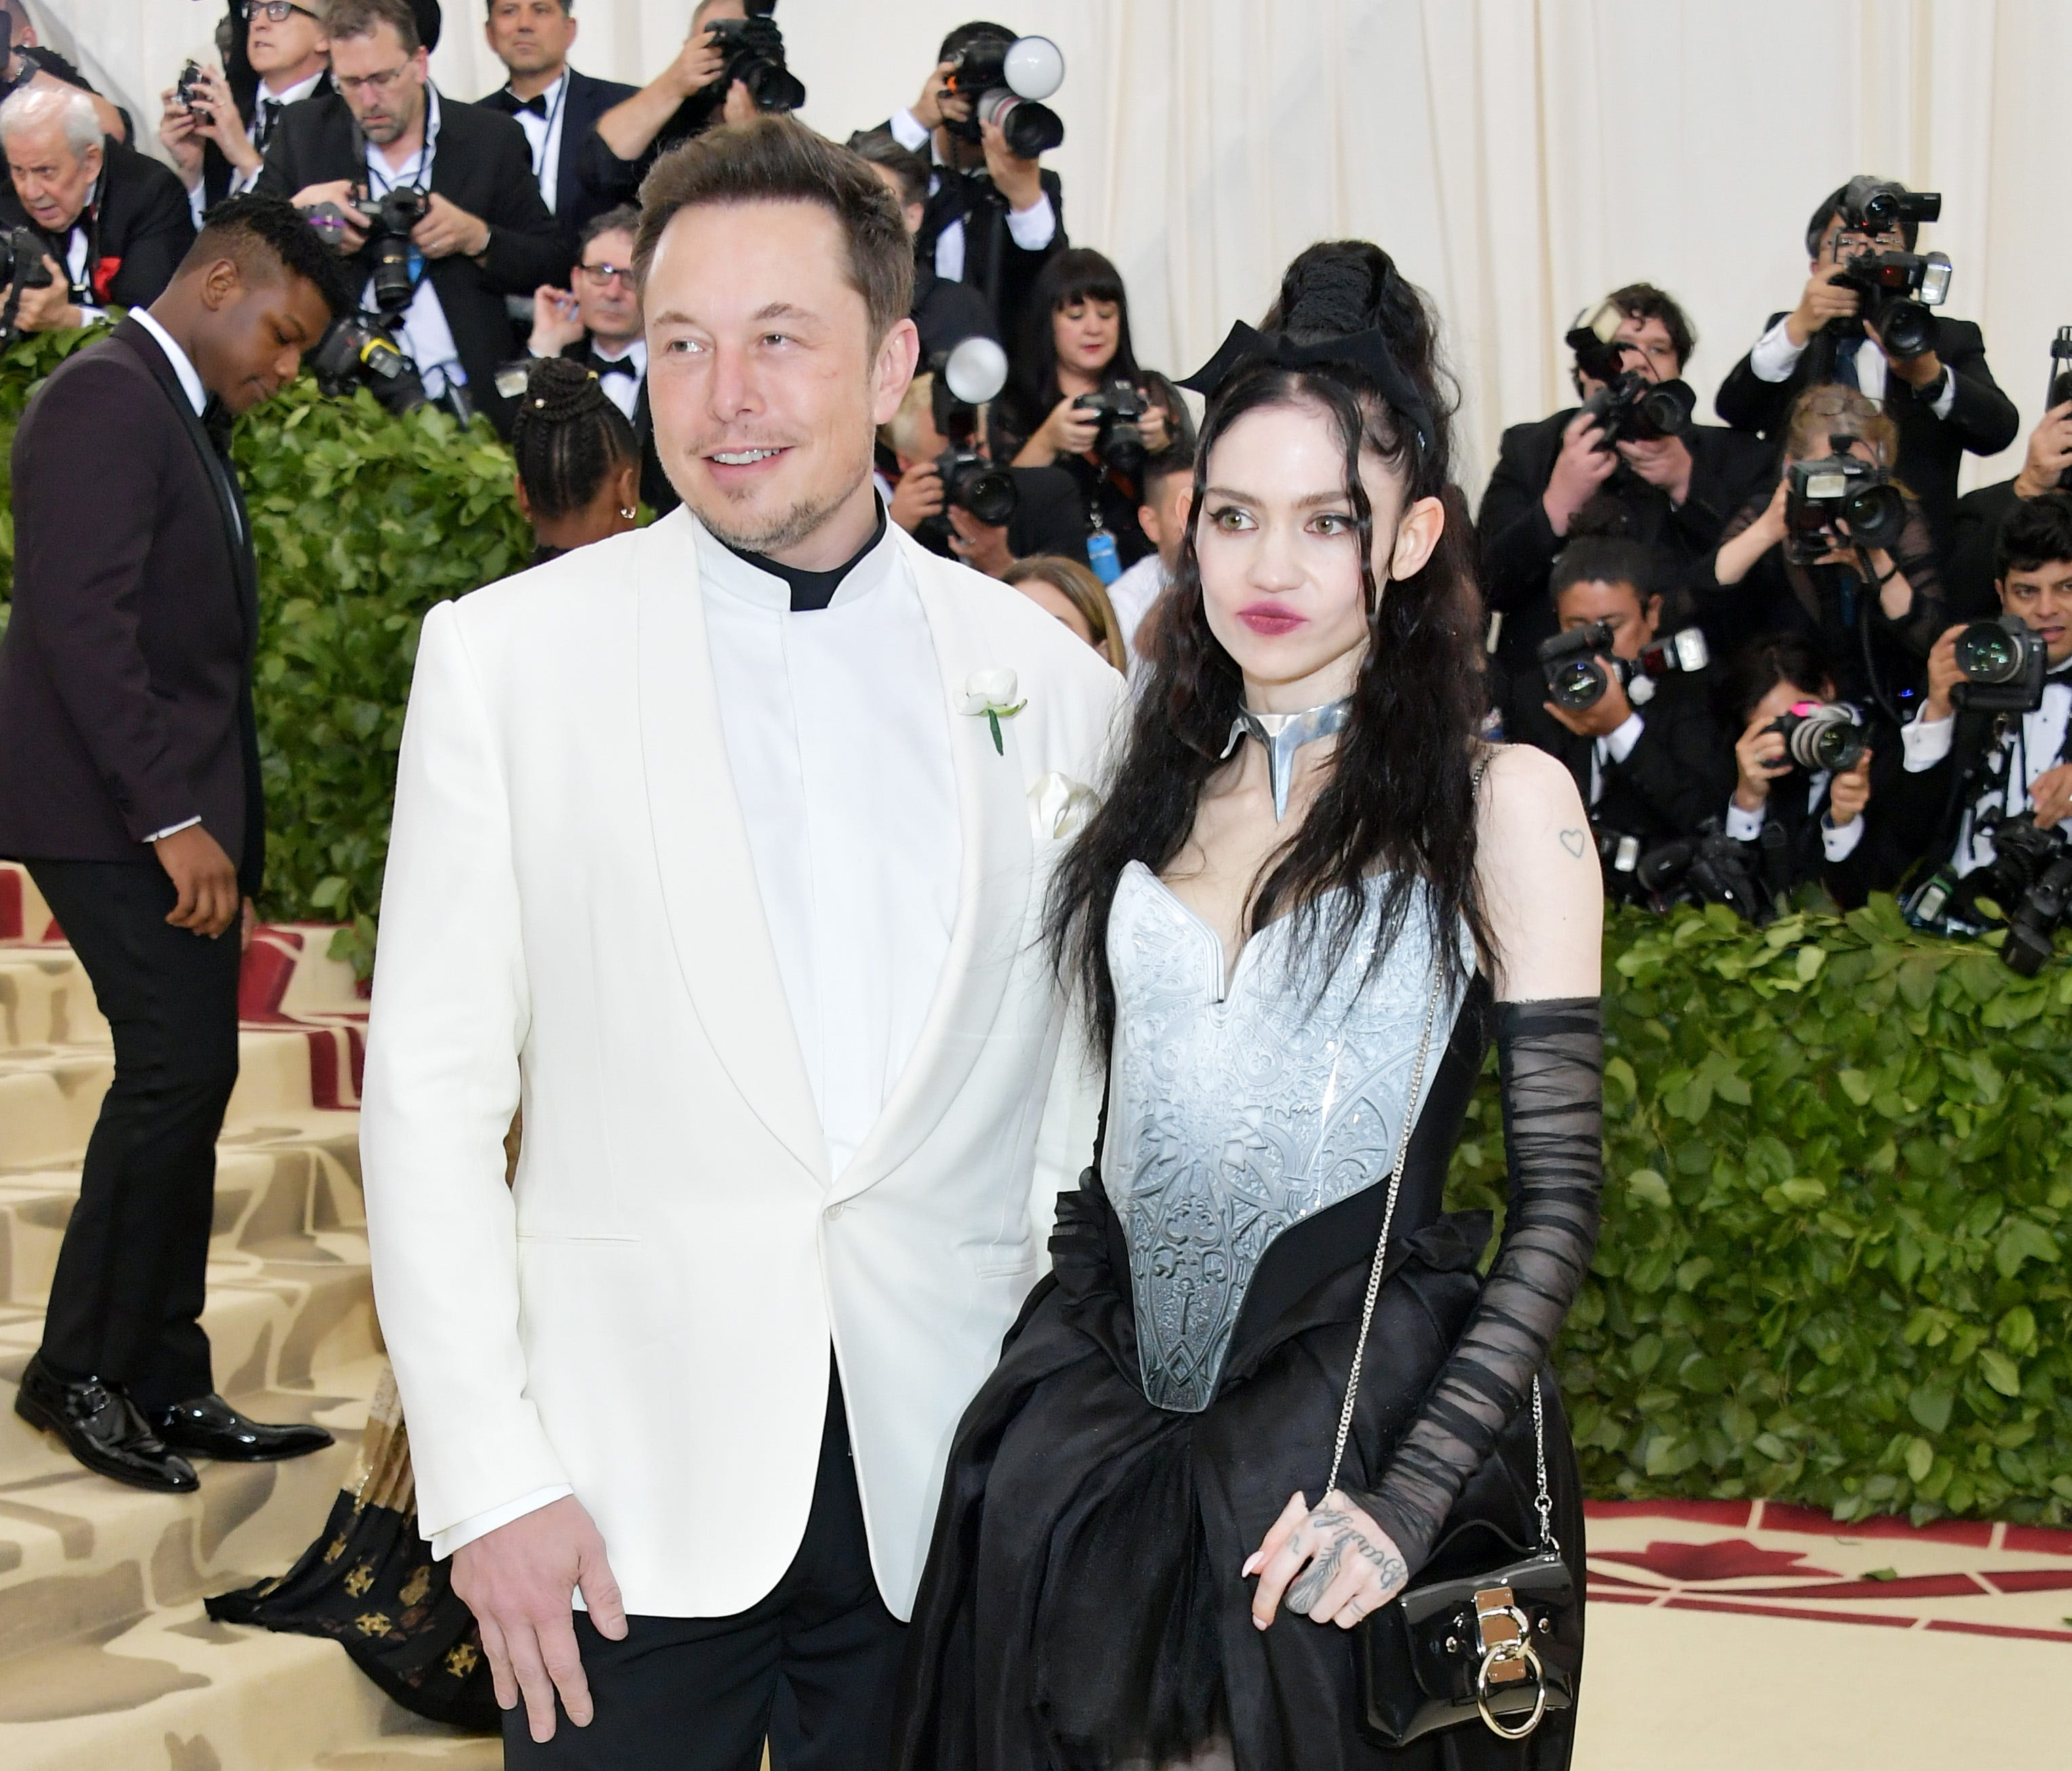 Elon Musk and Grimes arrive at the Met Gala together, making their relationship red-carpet official.